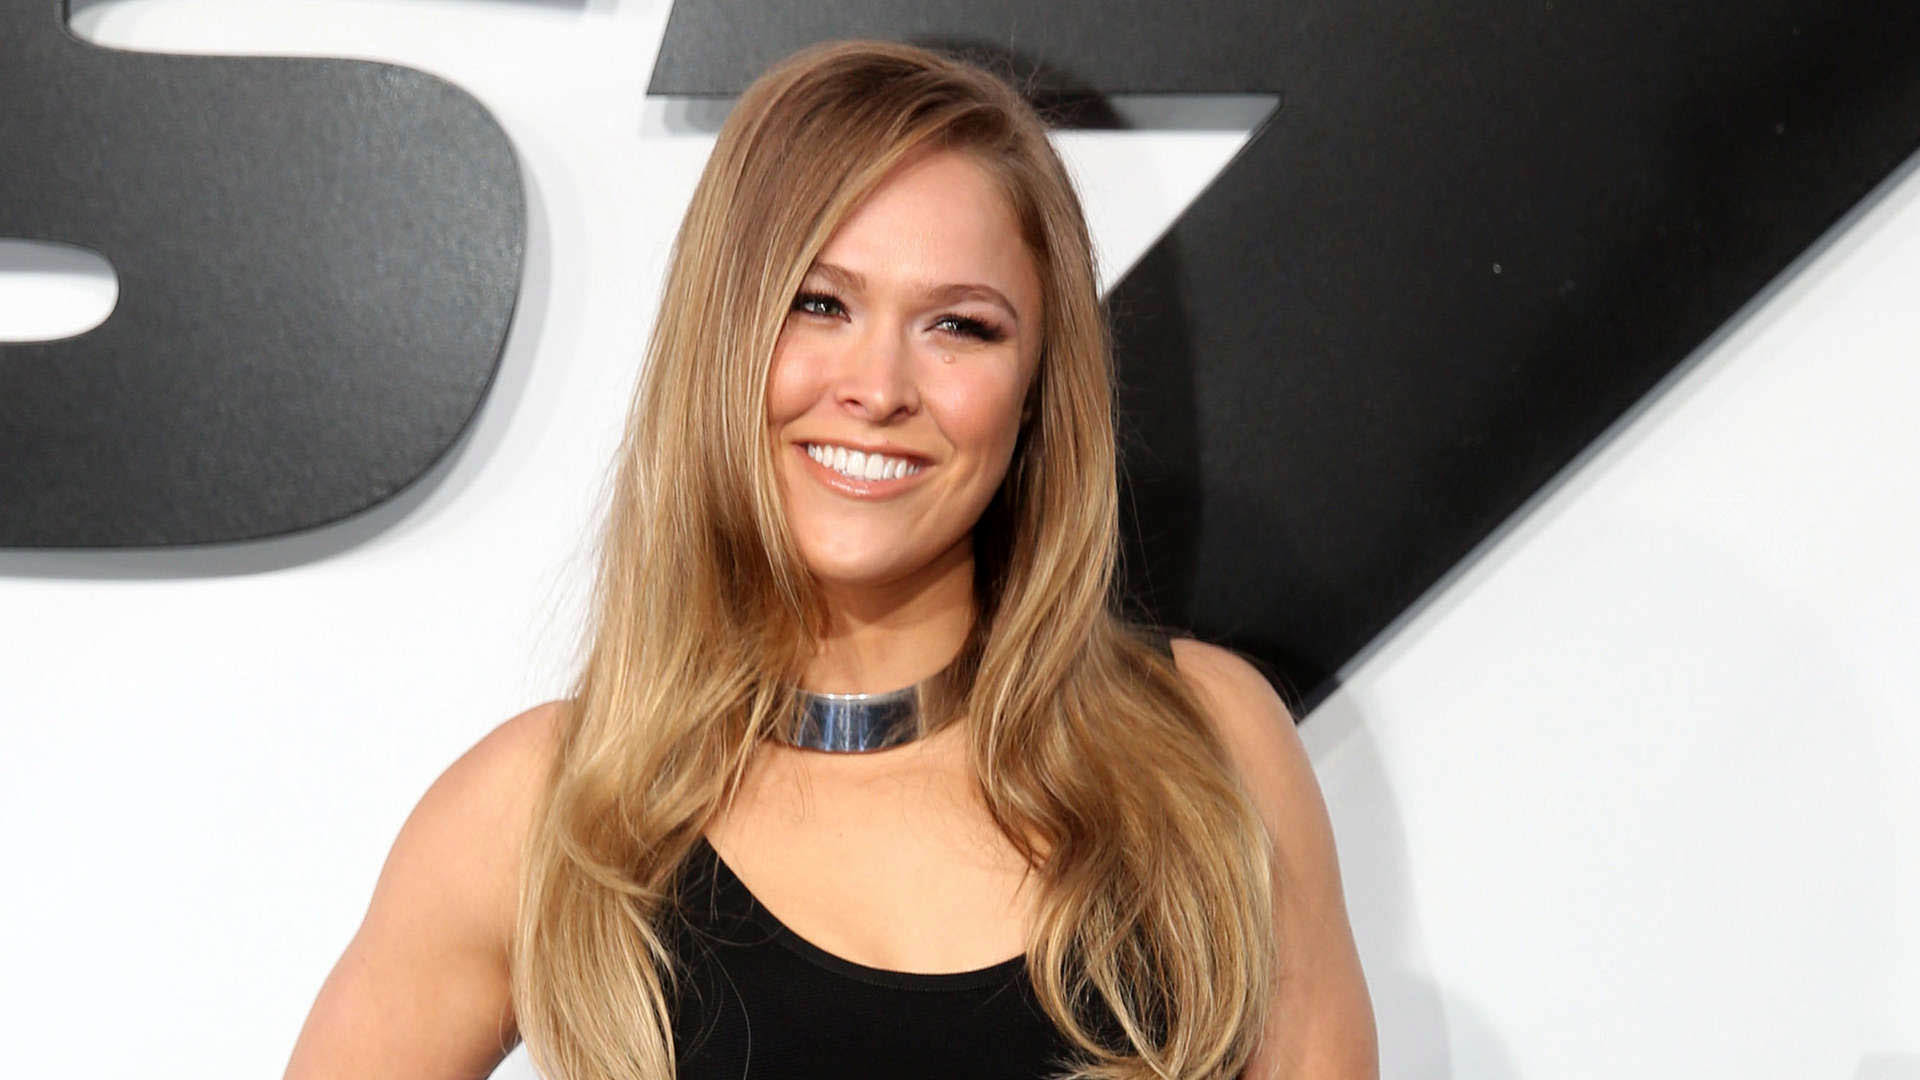 1920x1080 Ronda Rousey Beautiful Smile  wallpaper